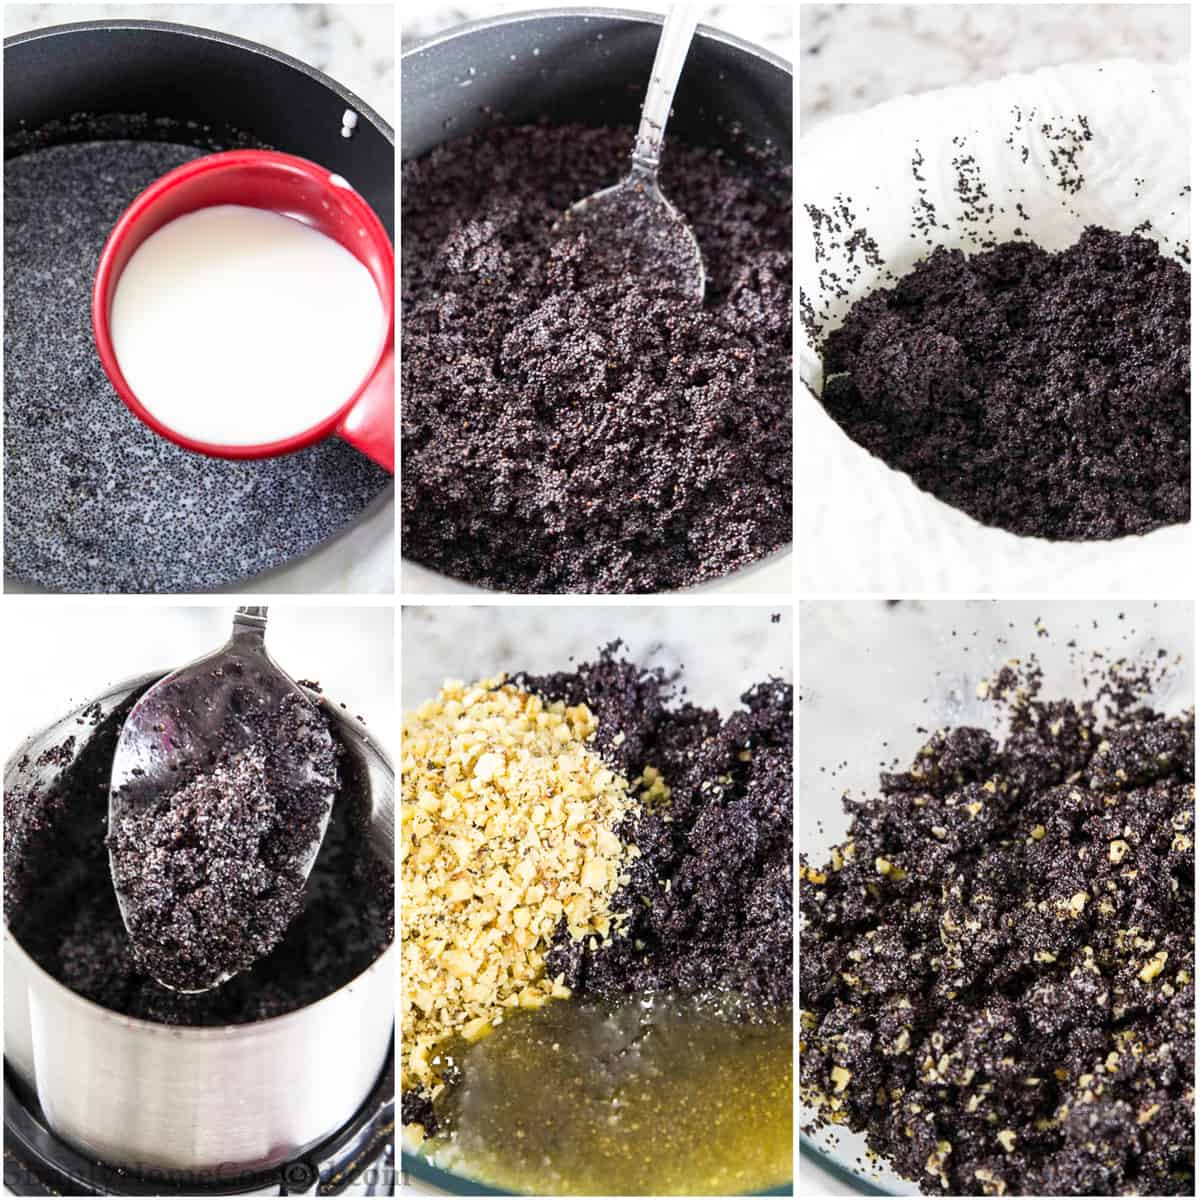 steps to make poppy seed filling